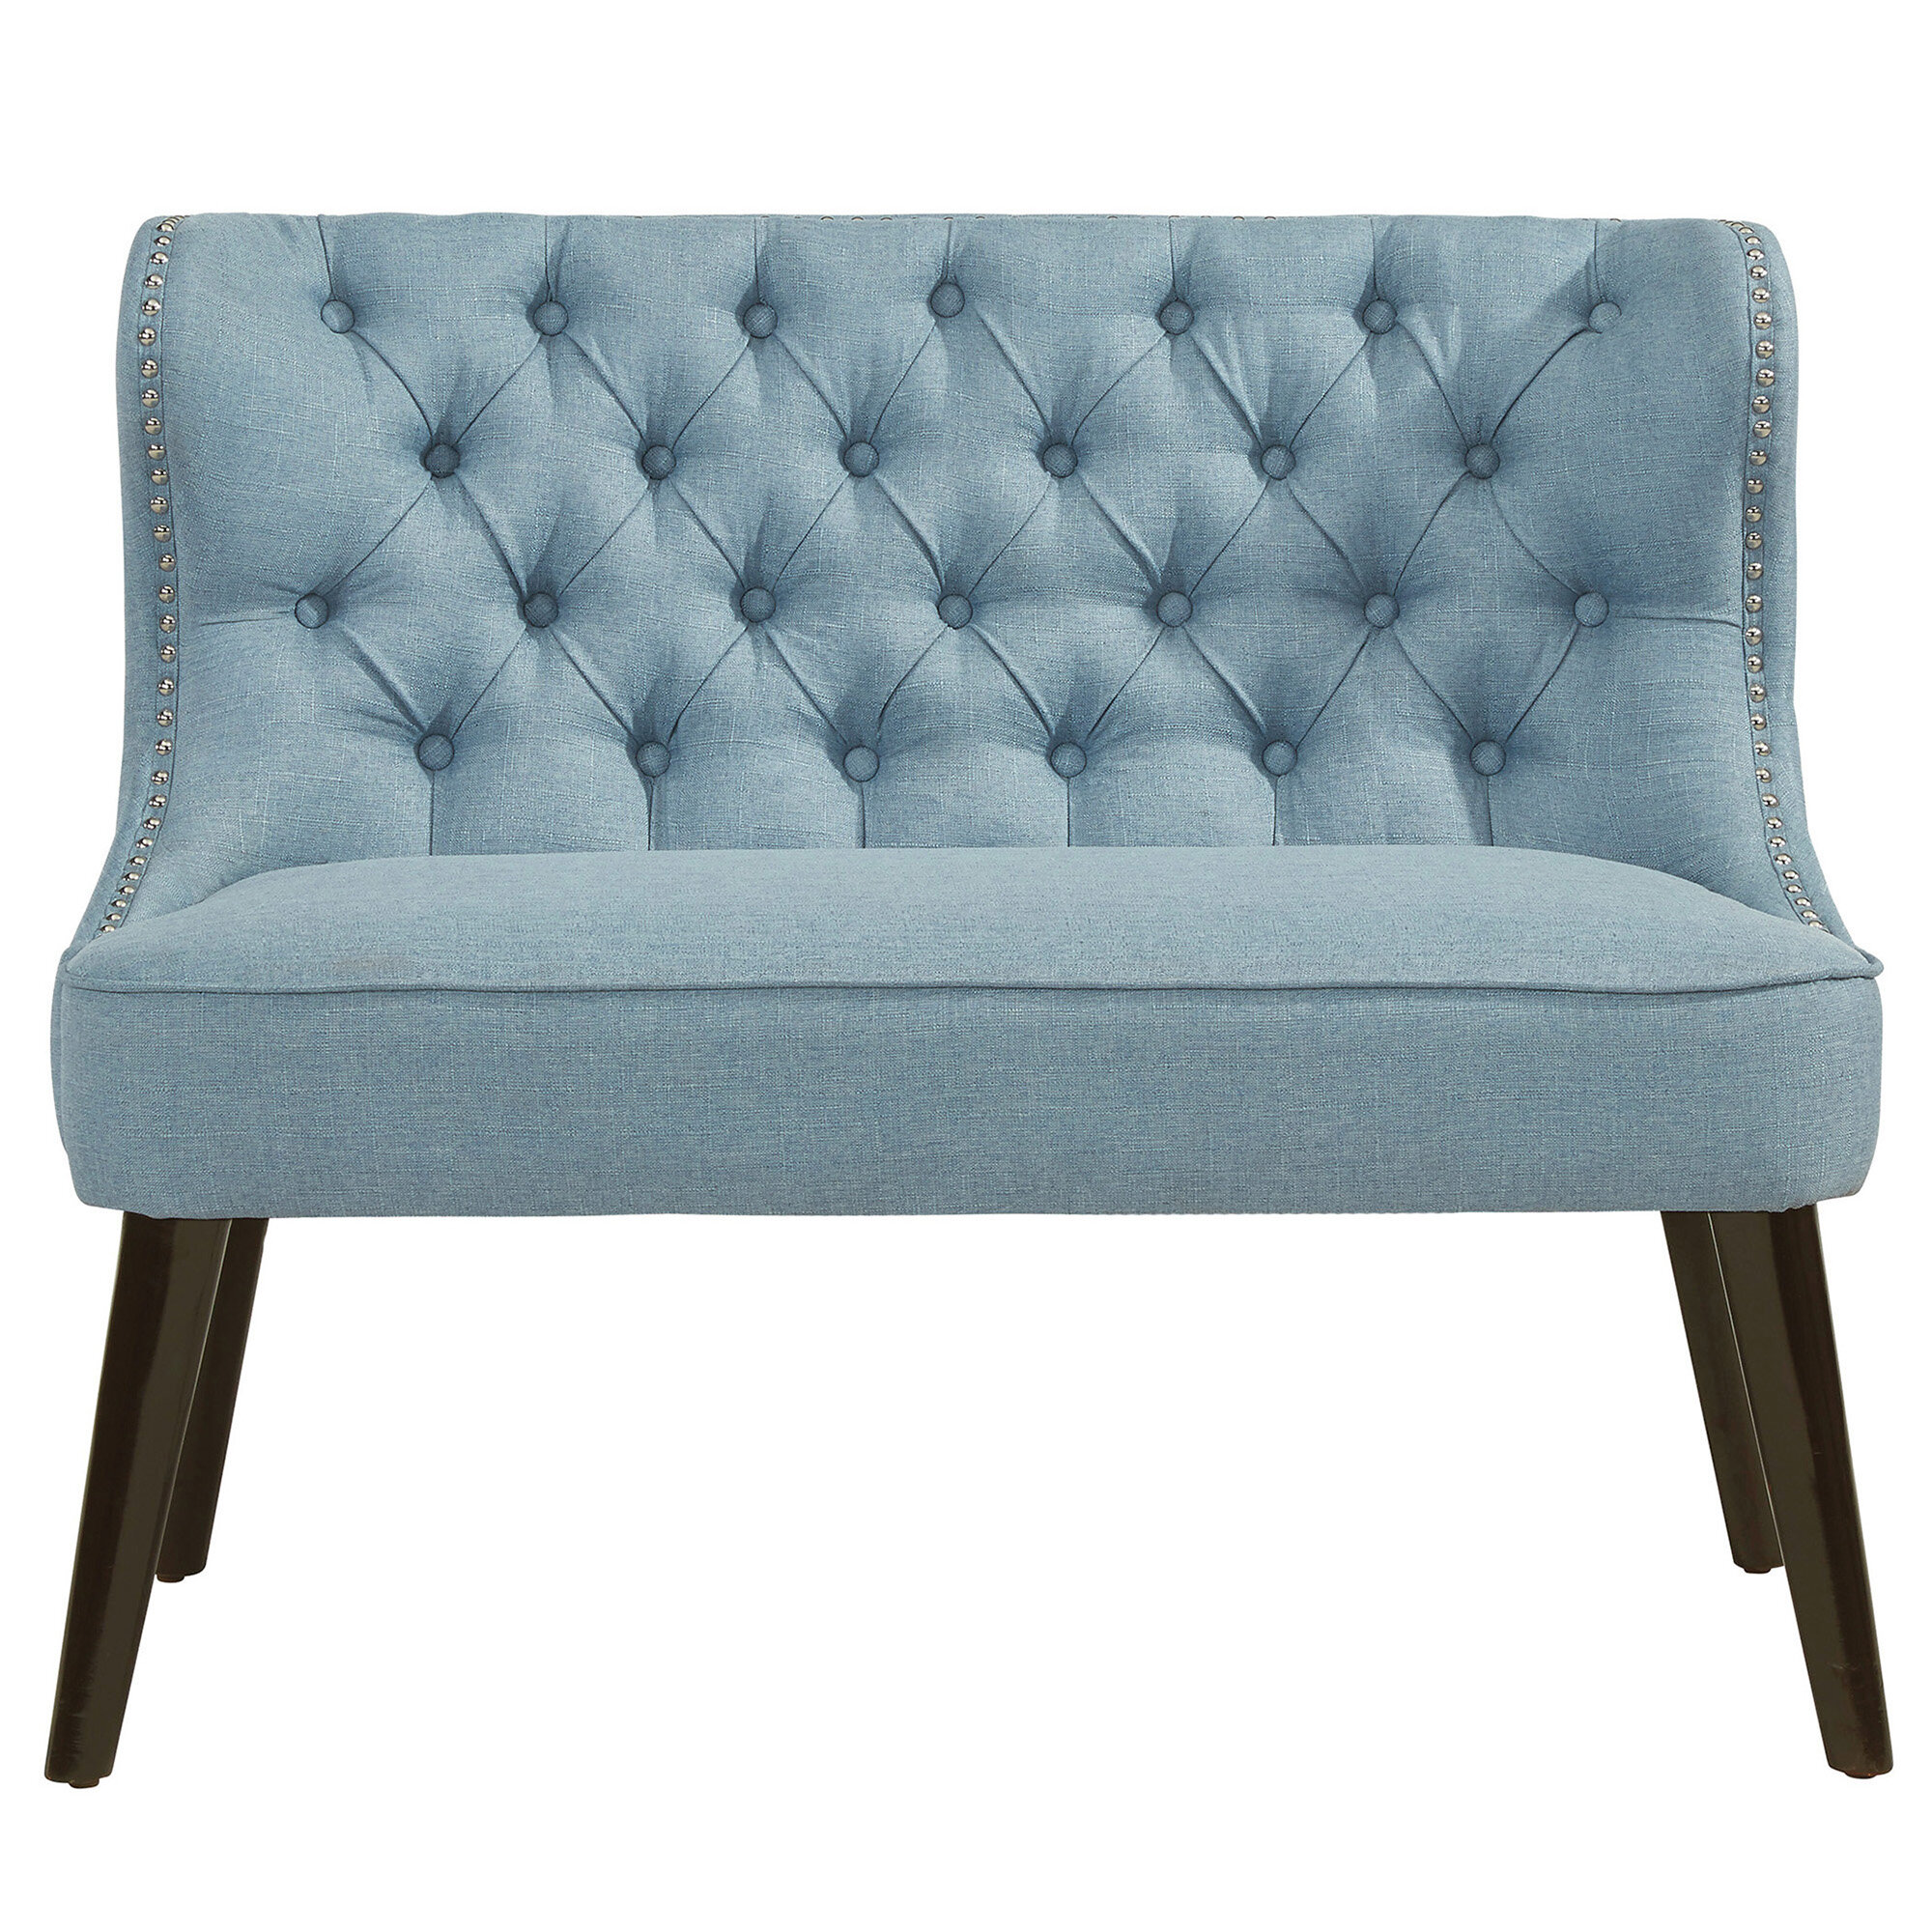 Willa Arlo Interiors Aguayo Tufted Wing Back Settee Bench & Reviews ...